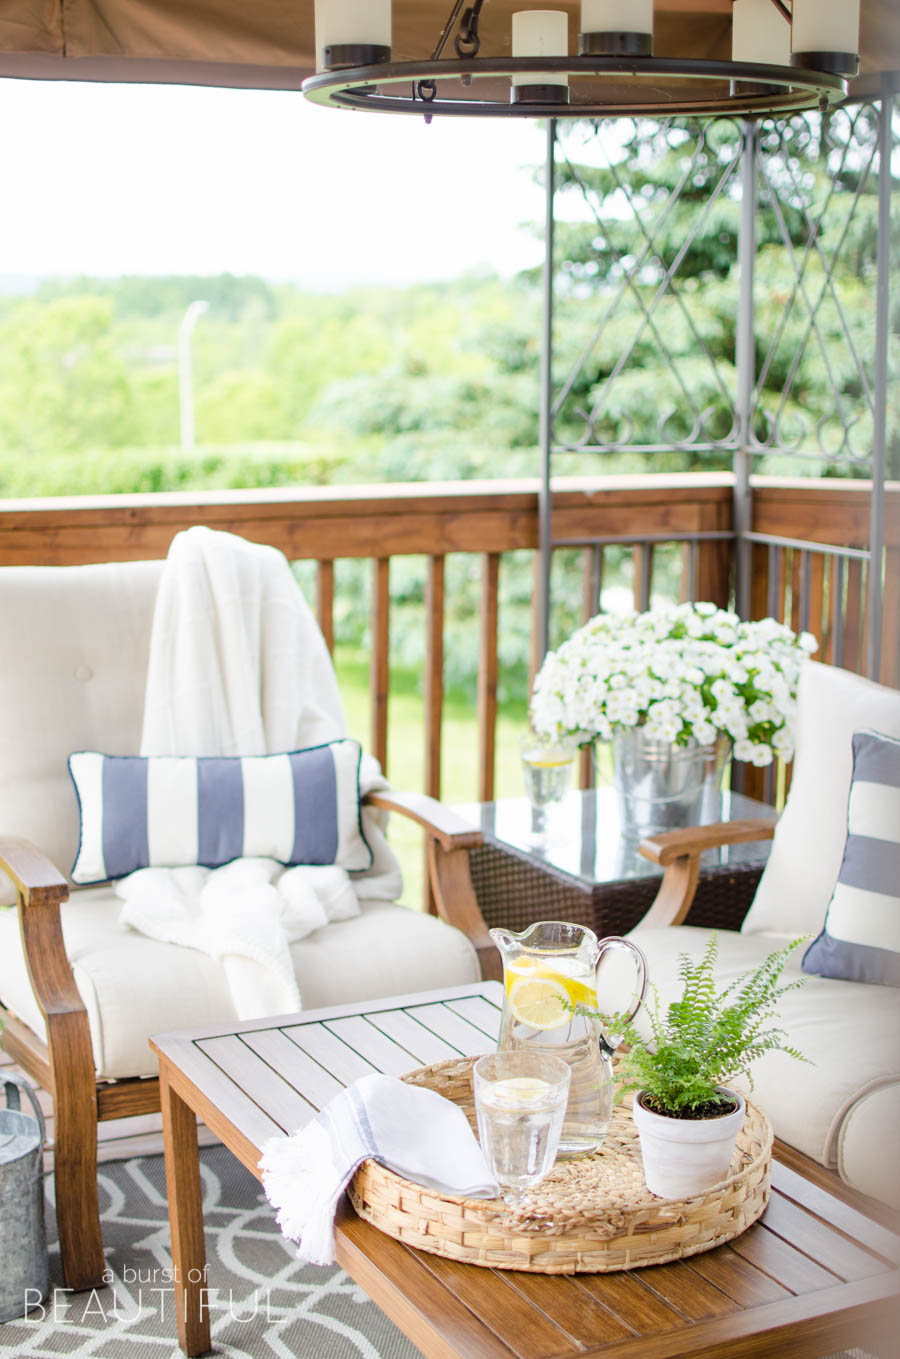 Learn how to revive a wood deck and create a beautiful outdoor living space with these easy to follow instructions from A Burst of Beautiful